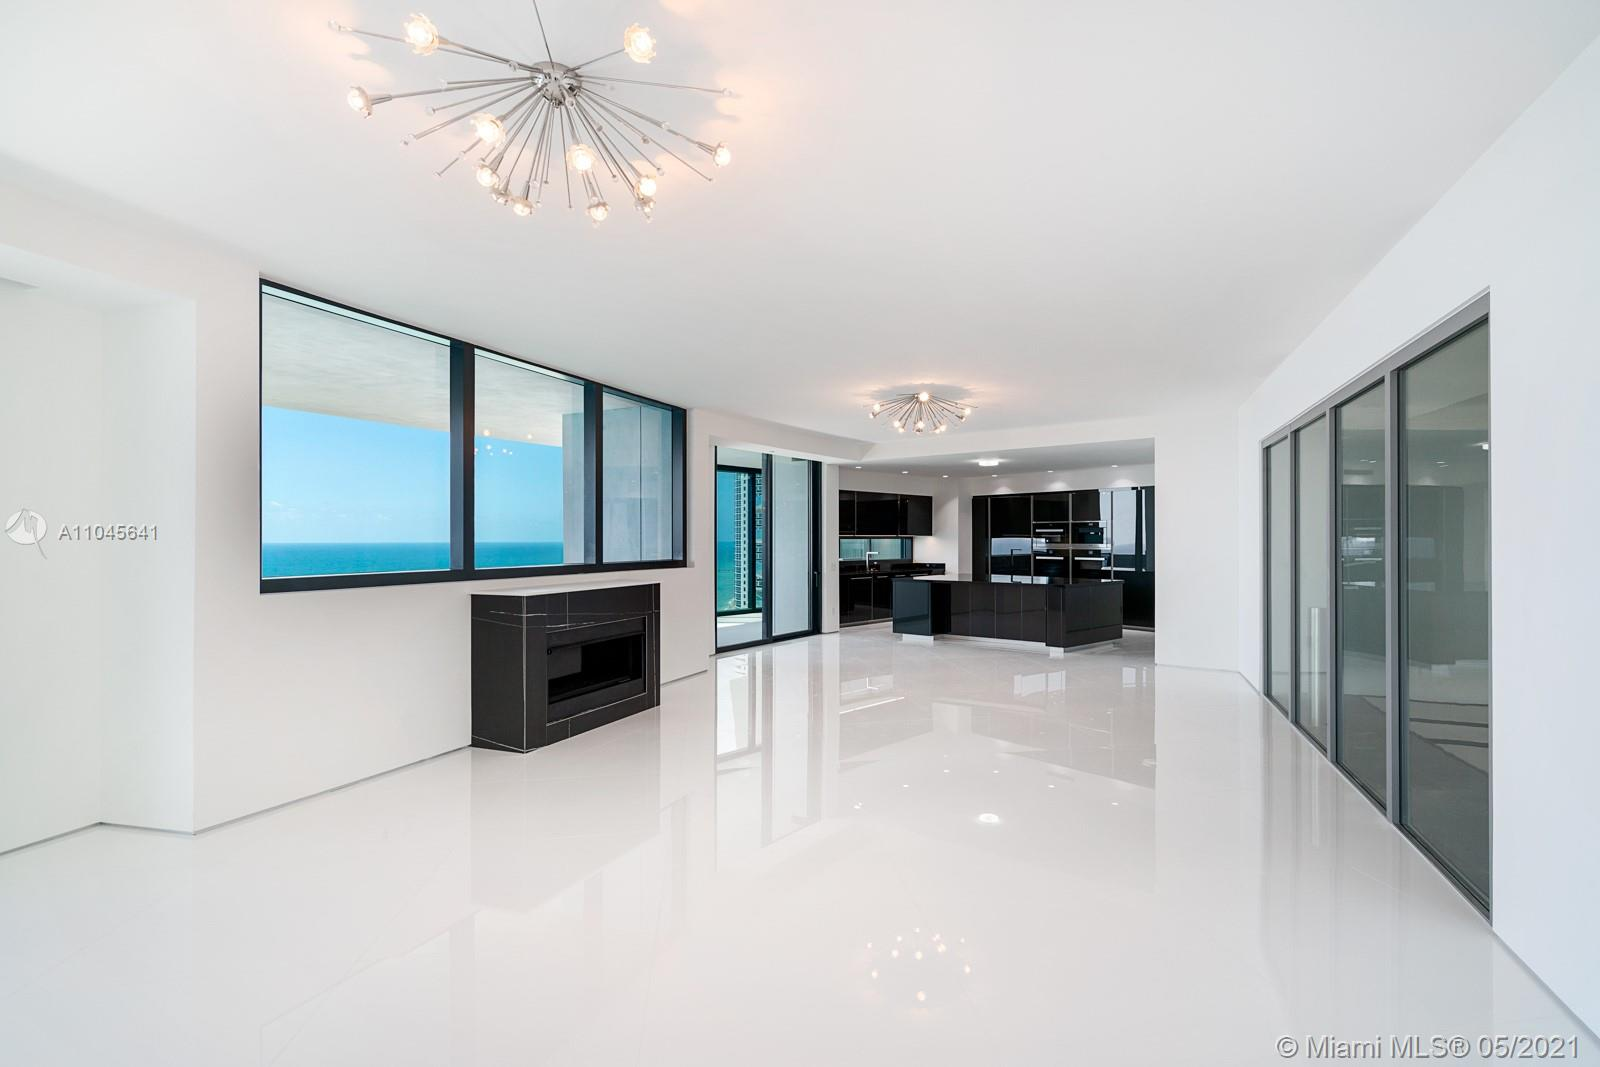 DRIVE YOUR CAR RIGHT INTO YOUR LIVING ROOM! This BRAND NEWLY FINISHED 3 bedroom apartment at Porsche Design Tower features a 2 car garage in the living room and a heated salt water pool/jacuzzi on the balcony. Enjoy living in the only building you can drive into your apartment with your car. Residence includes Miele appliances, private elevator, private restaurant with in room dining, building concierge, car concierge, full beach service, two pools, spa, car simulator, sports simulator, movie theatre, salon, and party room. Enjoy five star resort like living in one of the most exclusive building in the world!